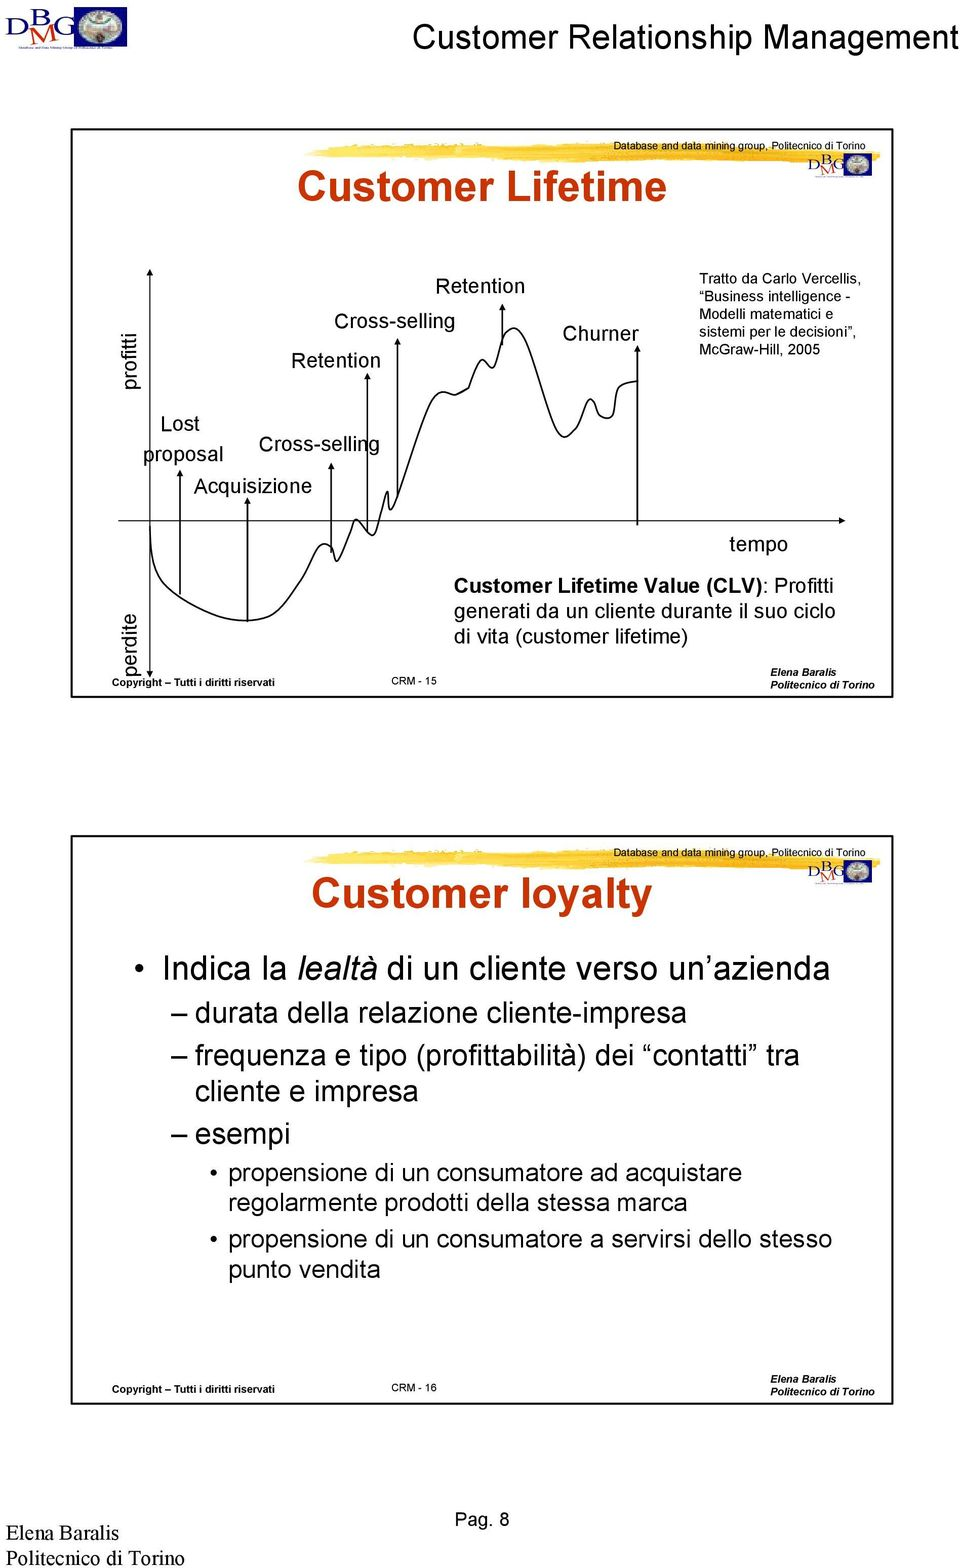 Lifetime Value (CLV): Profitti generati da un cliente durante il suo ciclo di vita (customer lifetime) Customer loyalty atabase and data mining group, Indica la lealtà di un cliente verso un azienda